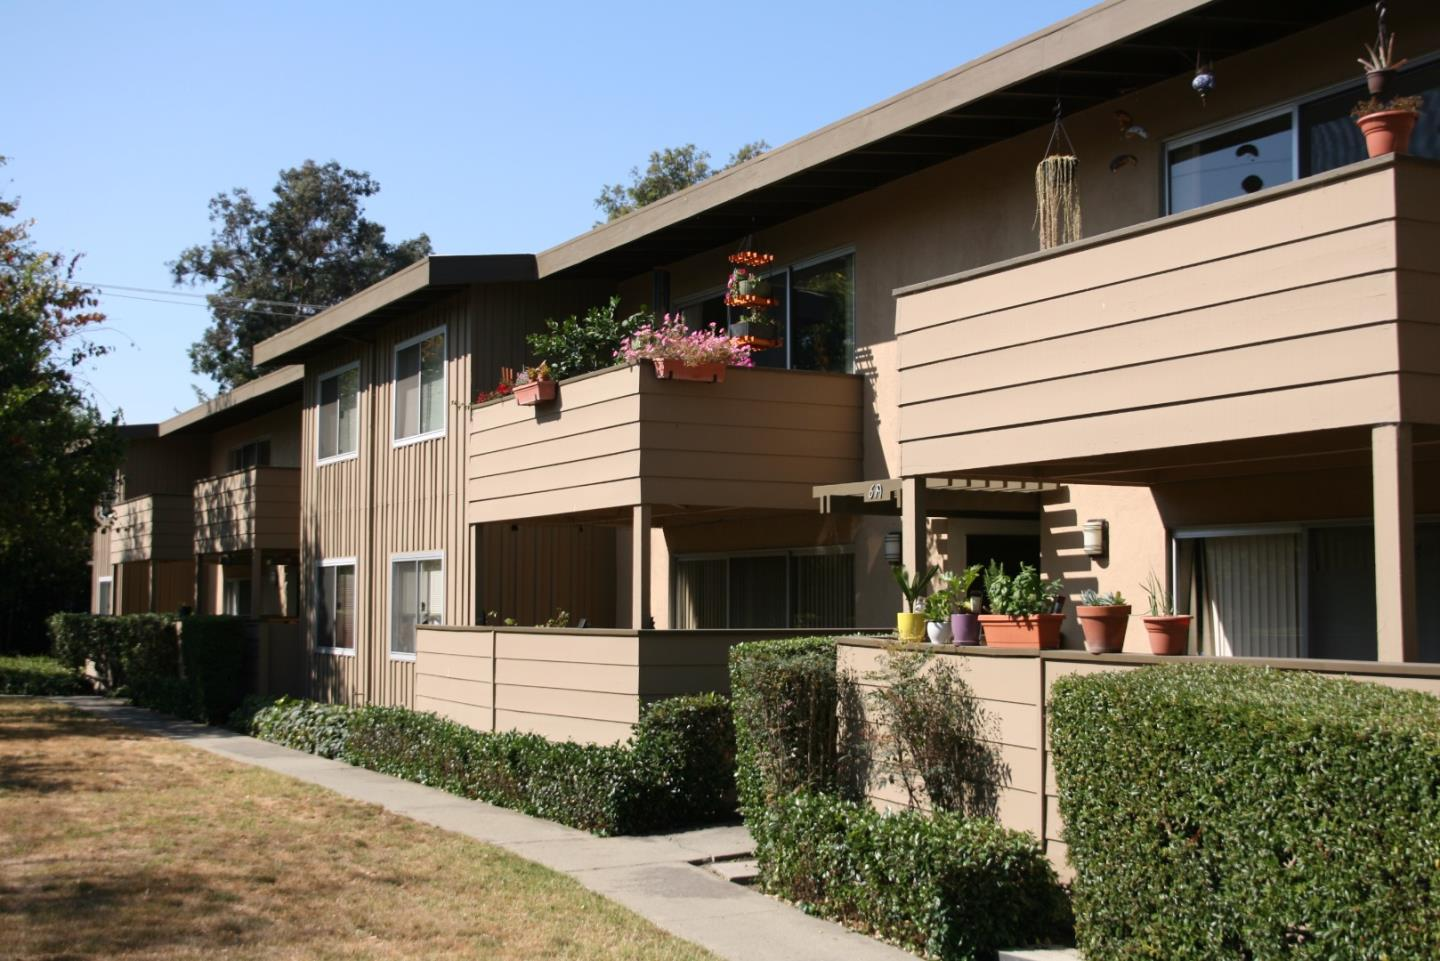 Multi-Family Home for Sale at 535 Walker Drive 535 Walker Drive Mountain View, California 94043 United States